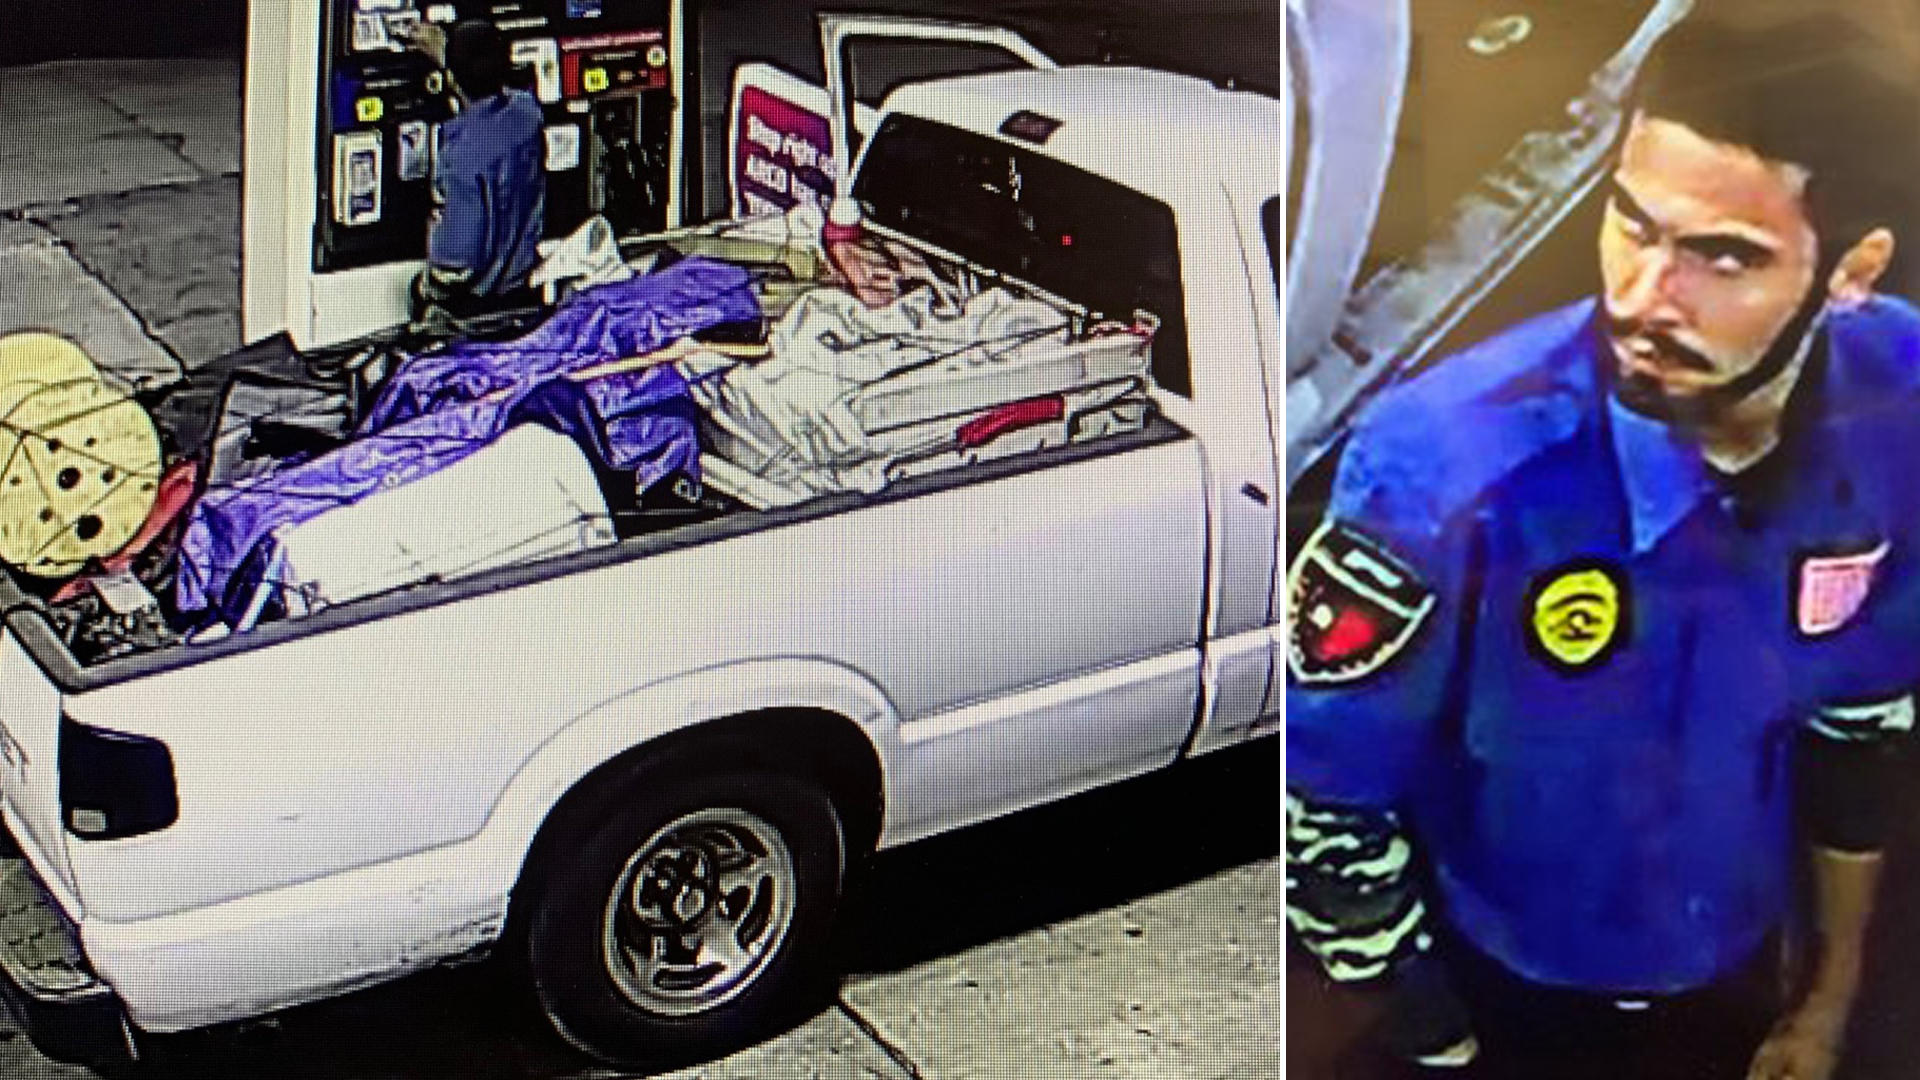 A vehicle and driver involved in a Boyle Heights hit-and-run crash are seen in photos provided by the LAPD on Dec. 31, 2020.